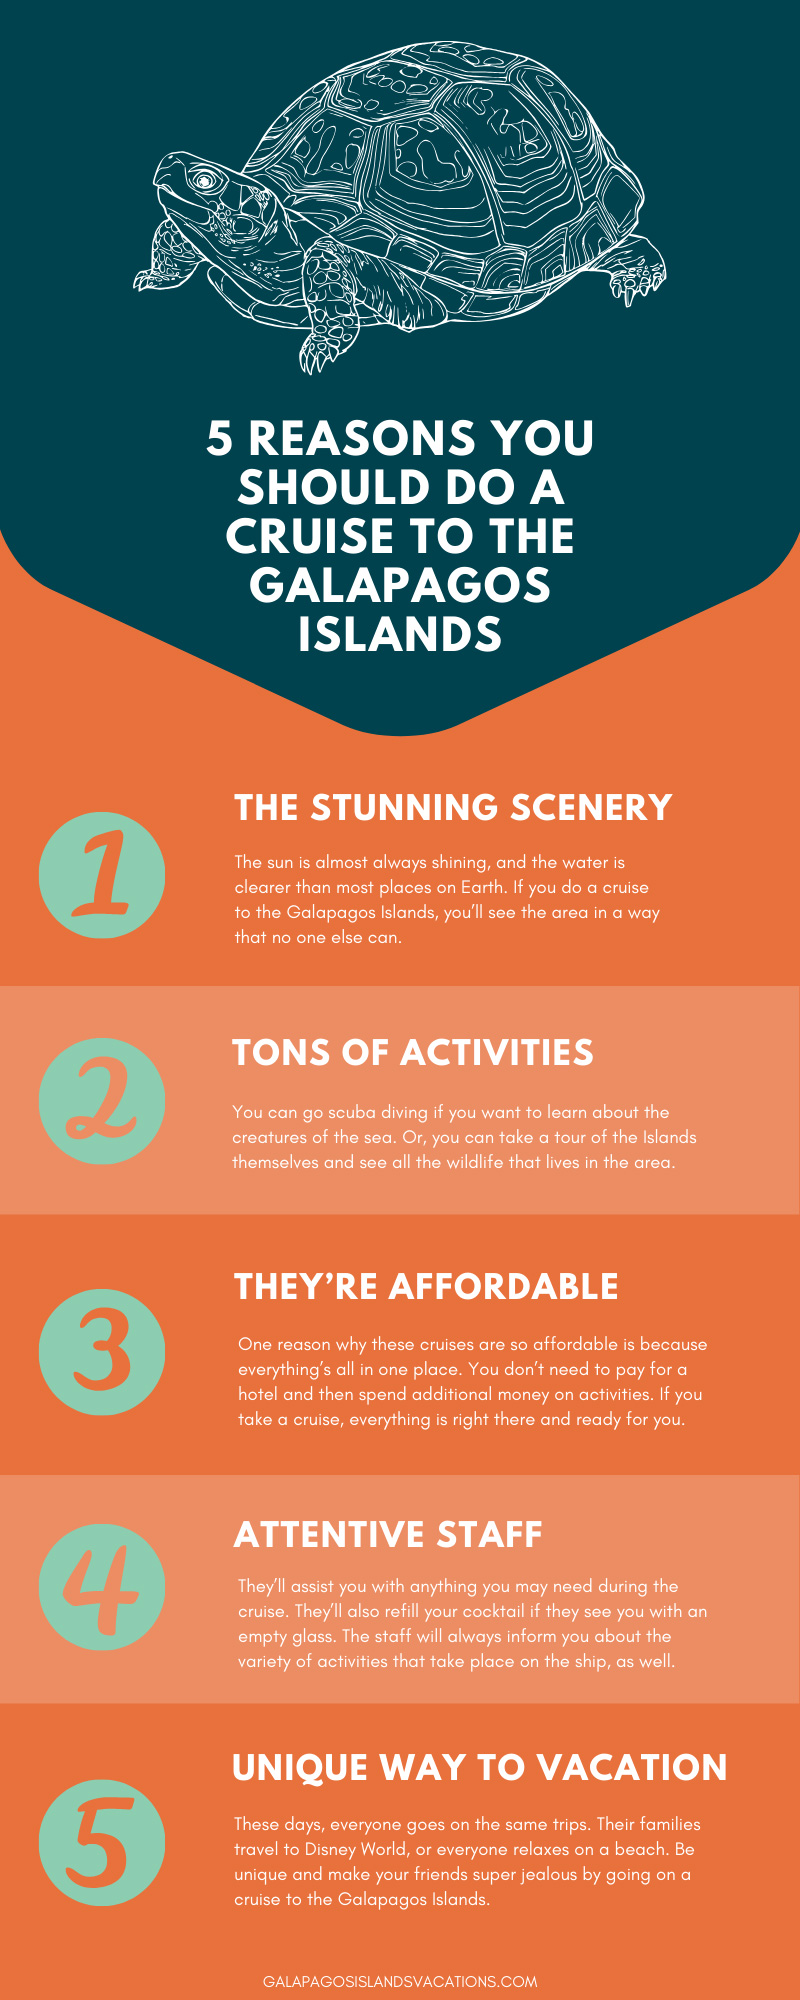 5 Reasons You Should Do a Cruise to the Galapagos Islands